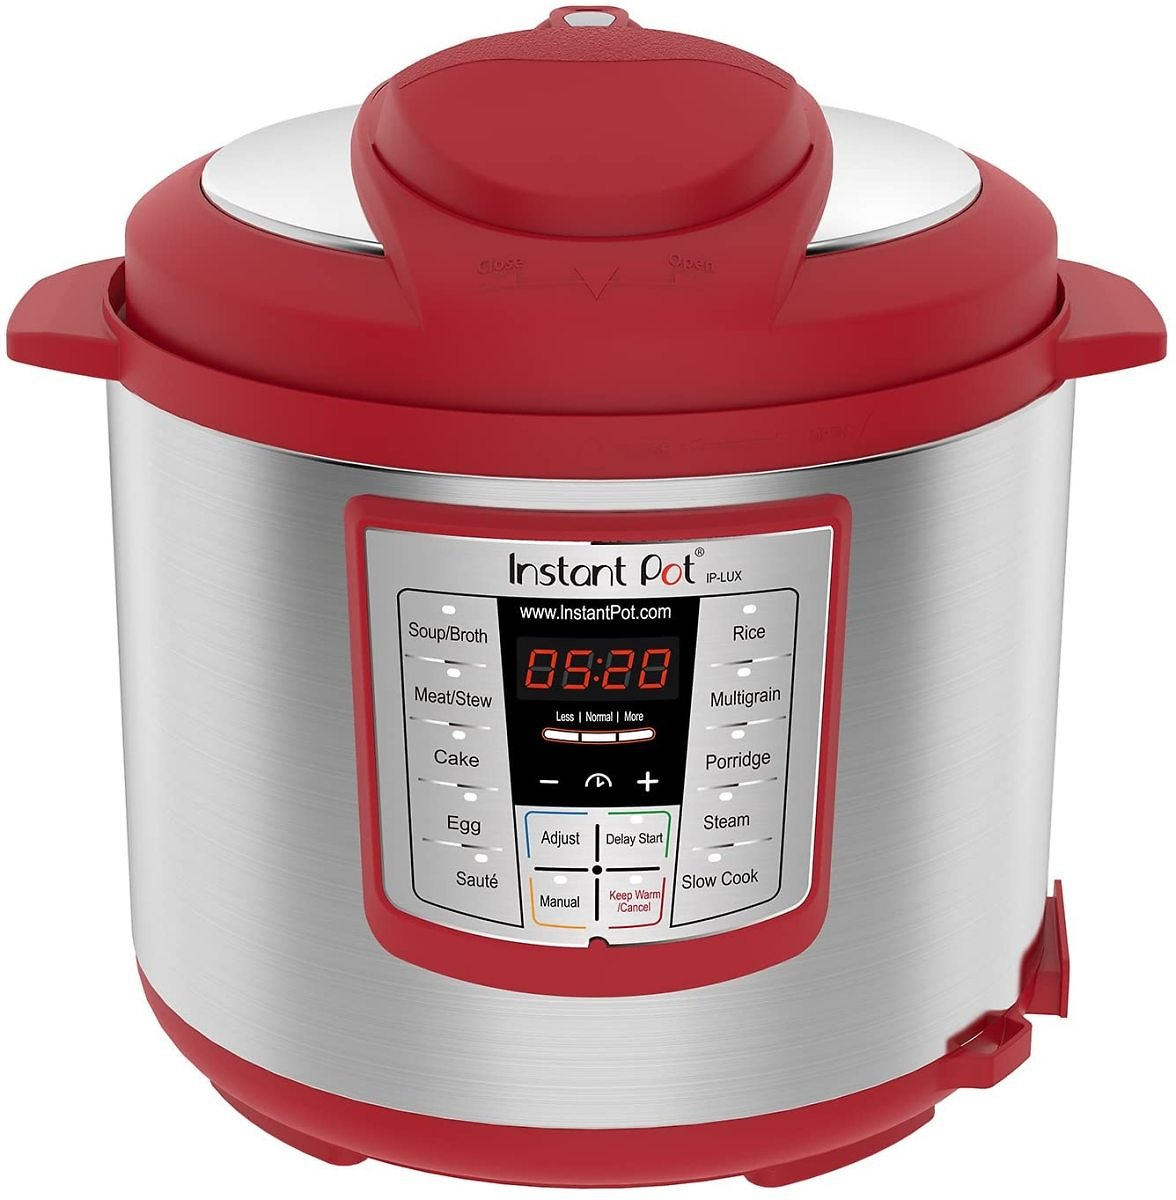 Instant Pot Lux 6-in-1 6-Quart Electric Multi-Cooker, Red